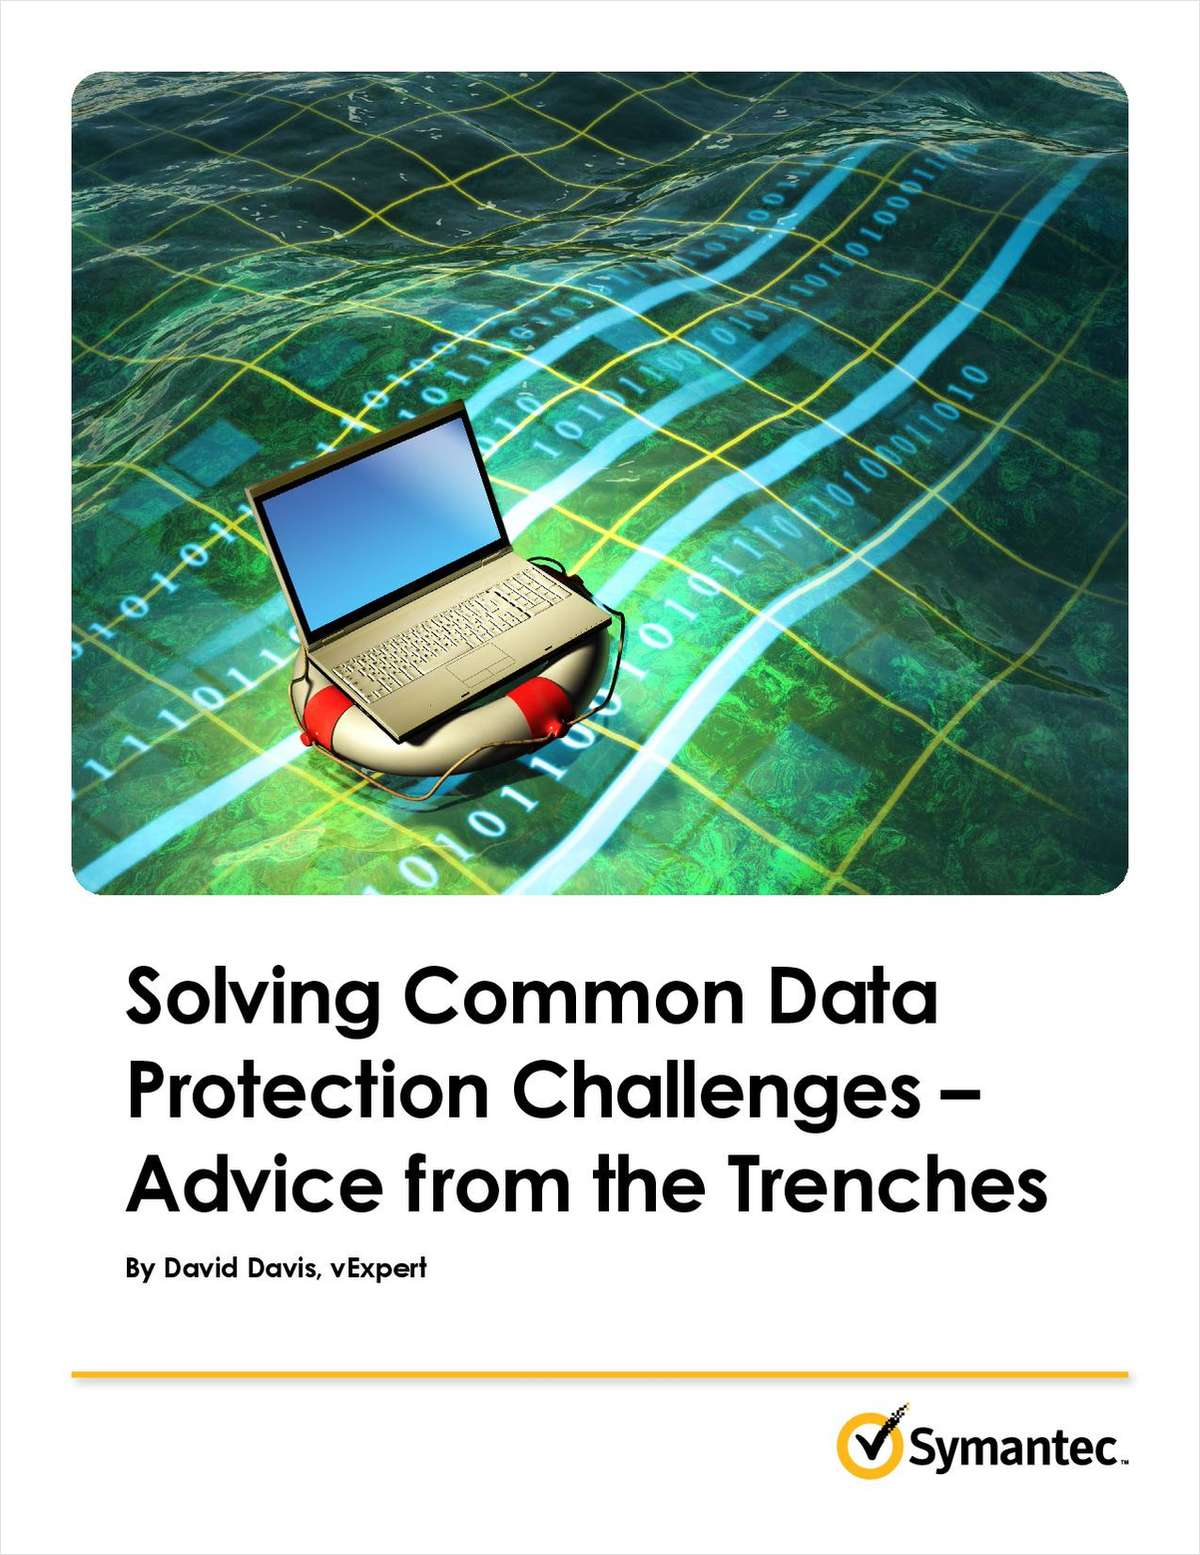 Solving Common Data Protection Challenges - Advice from the Trenches